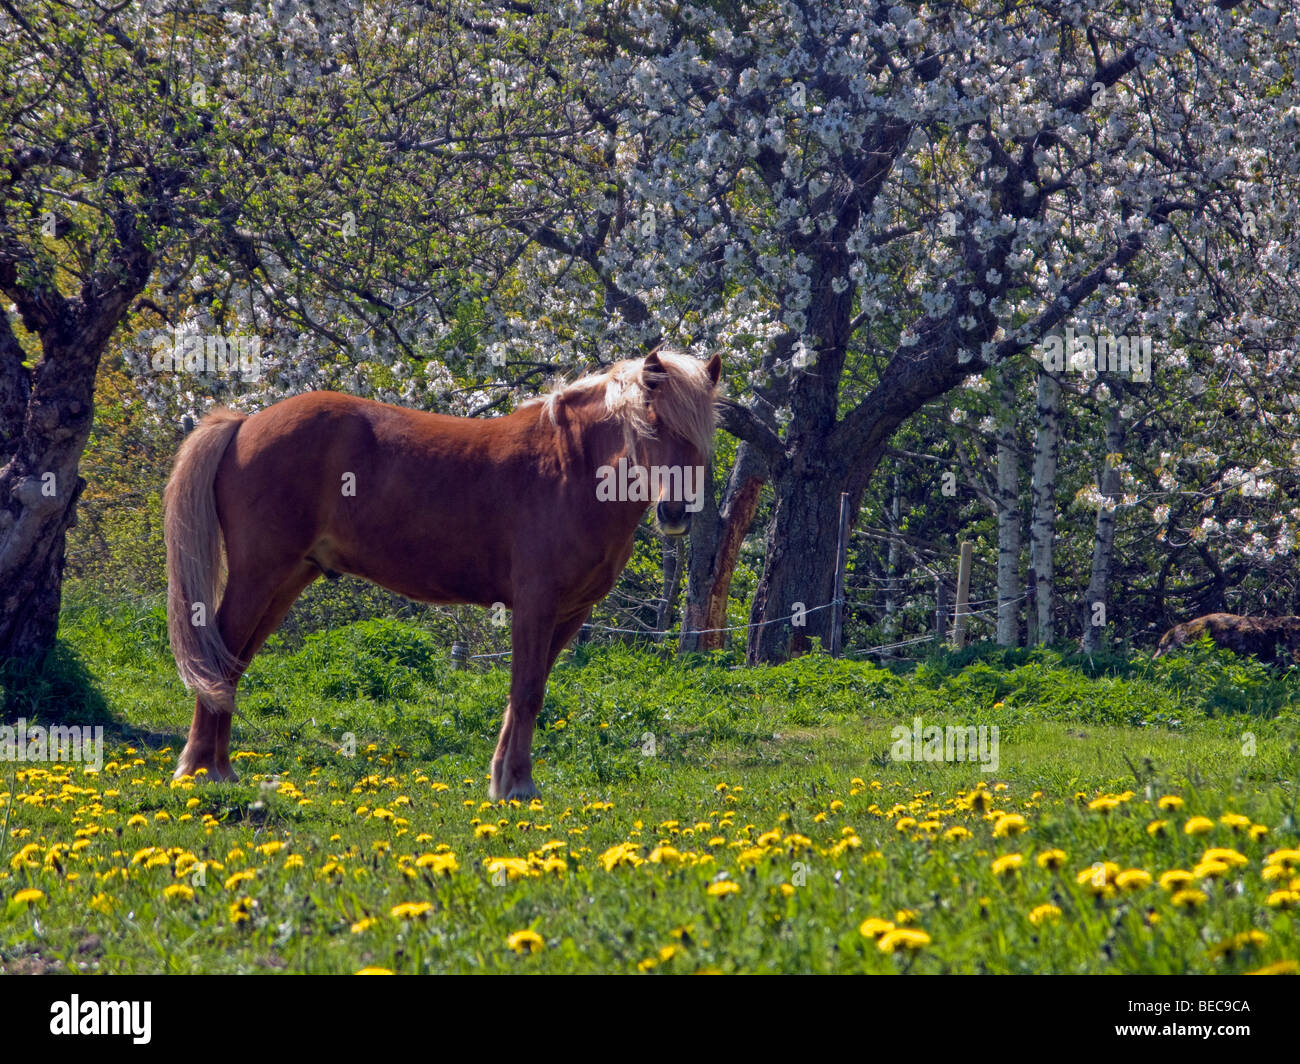 Icelandic horse on a field with Dandelion flowers, under blossoming trees, in Sweden. - Stock Image